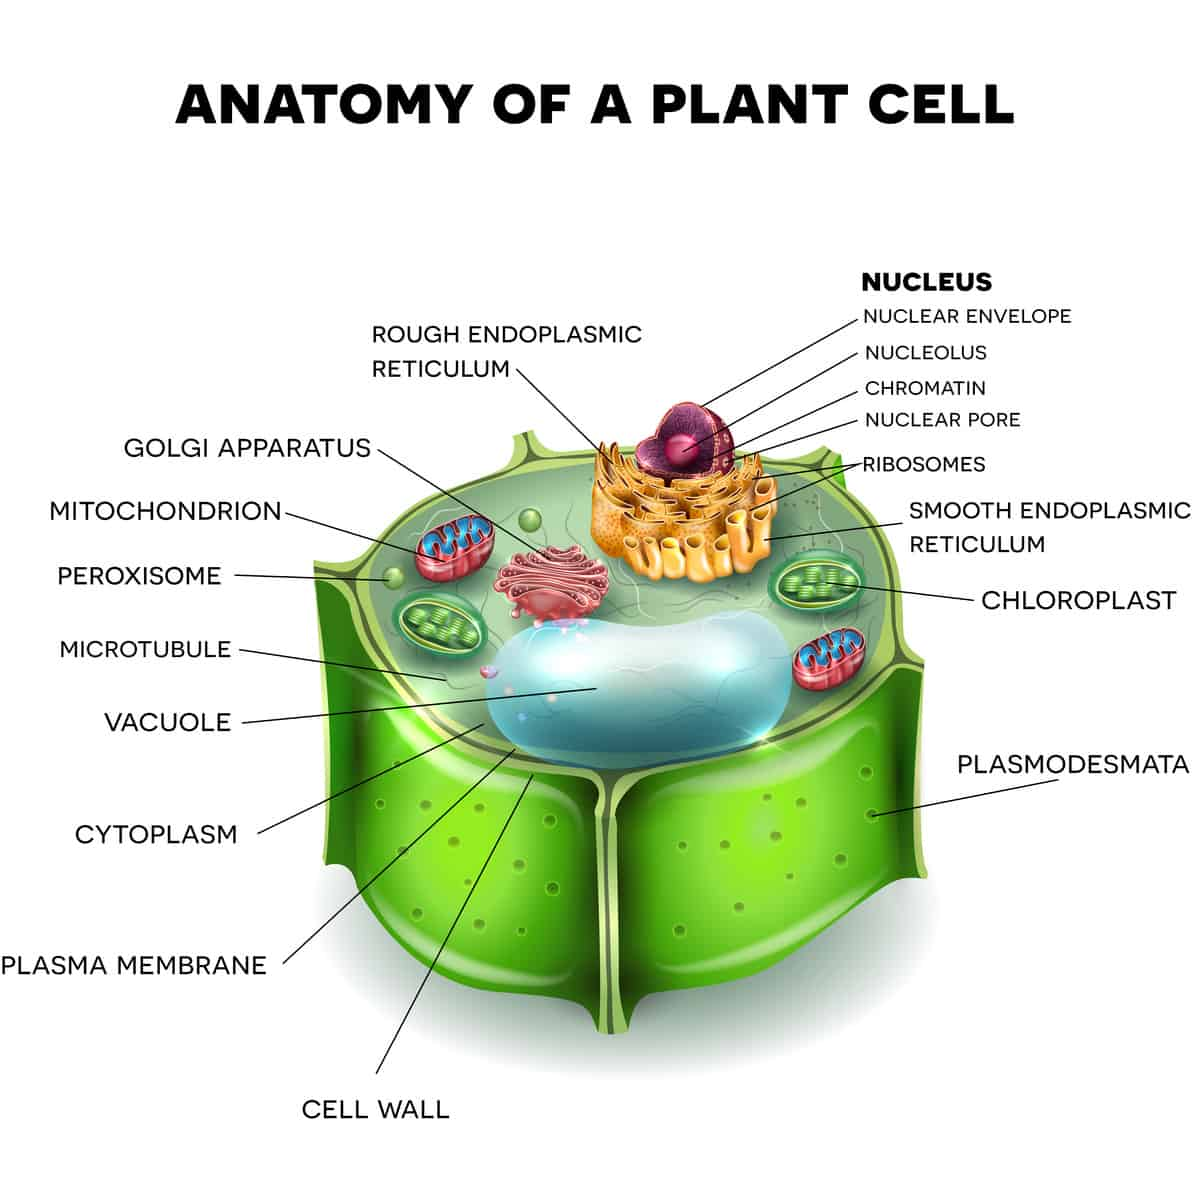 Illustration of a plant cell